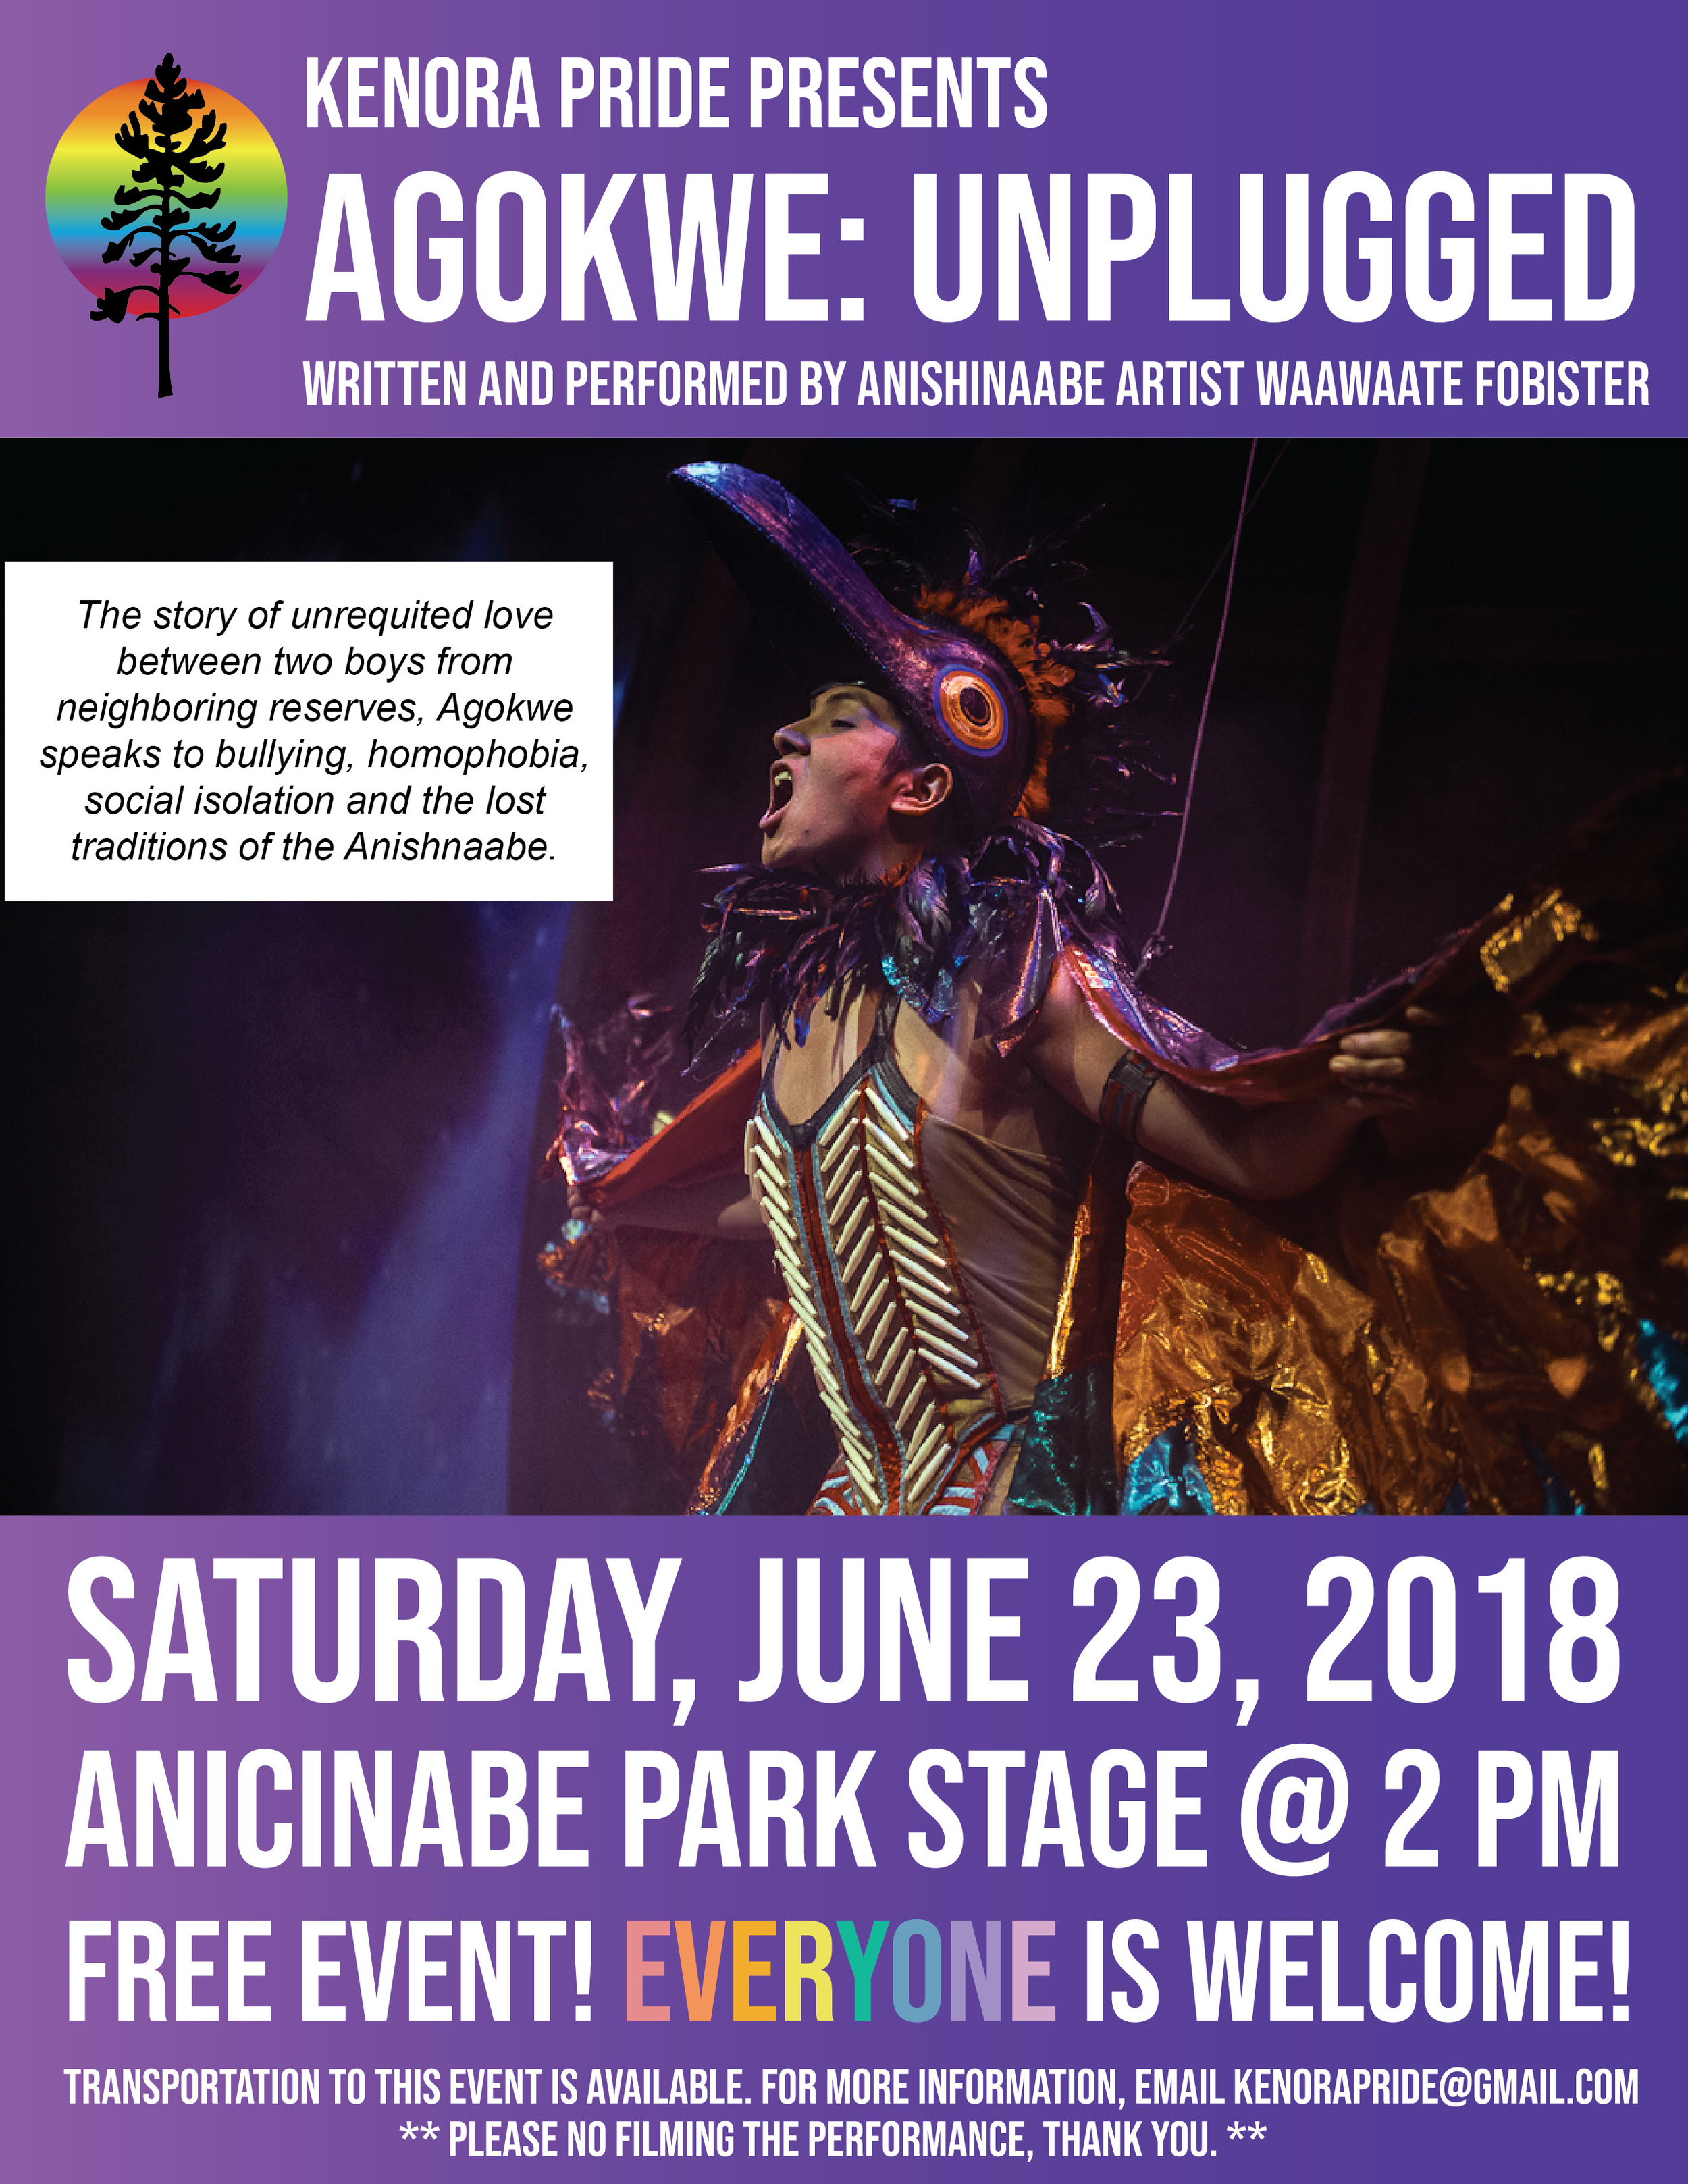 agokwe unplugged event poster.jpg